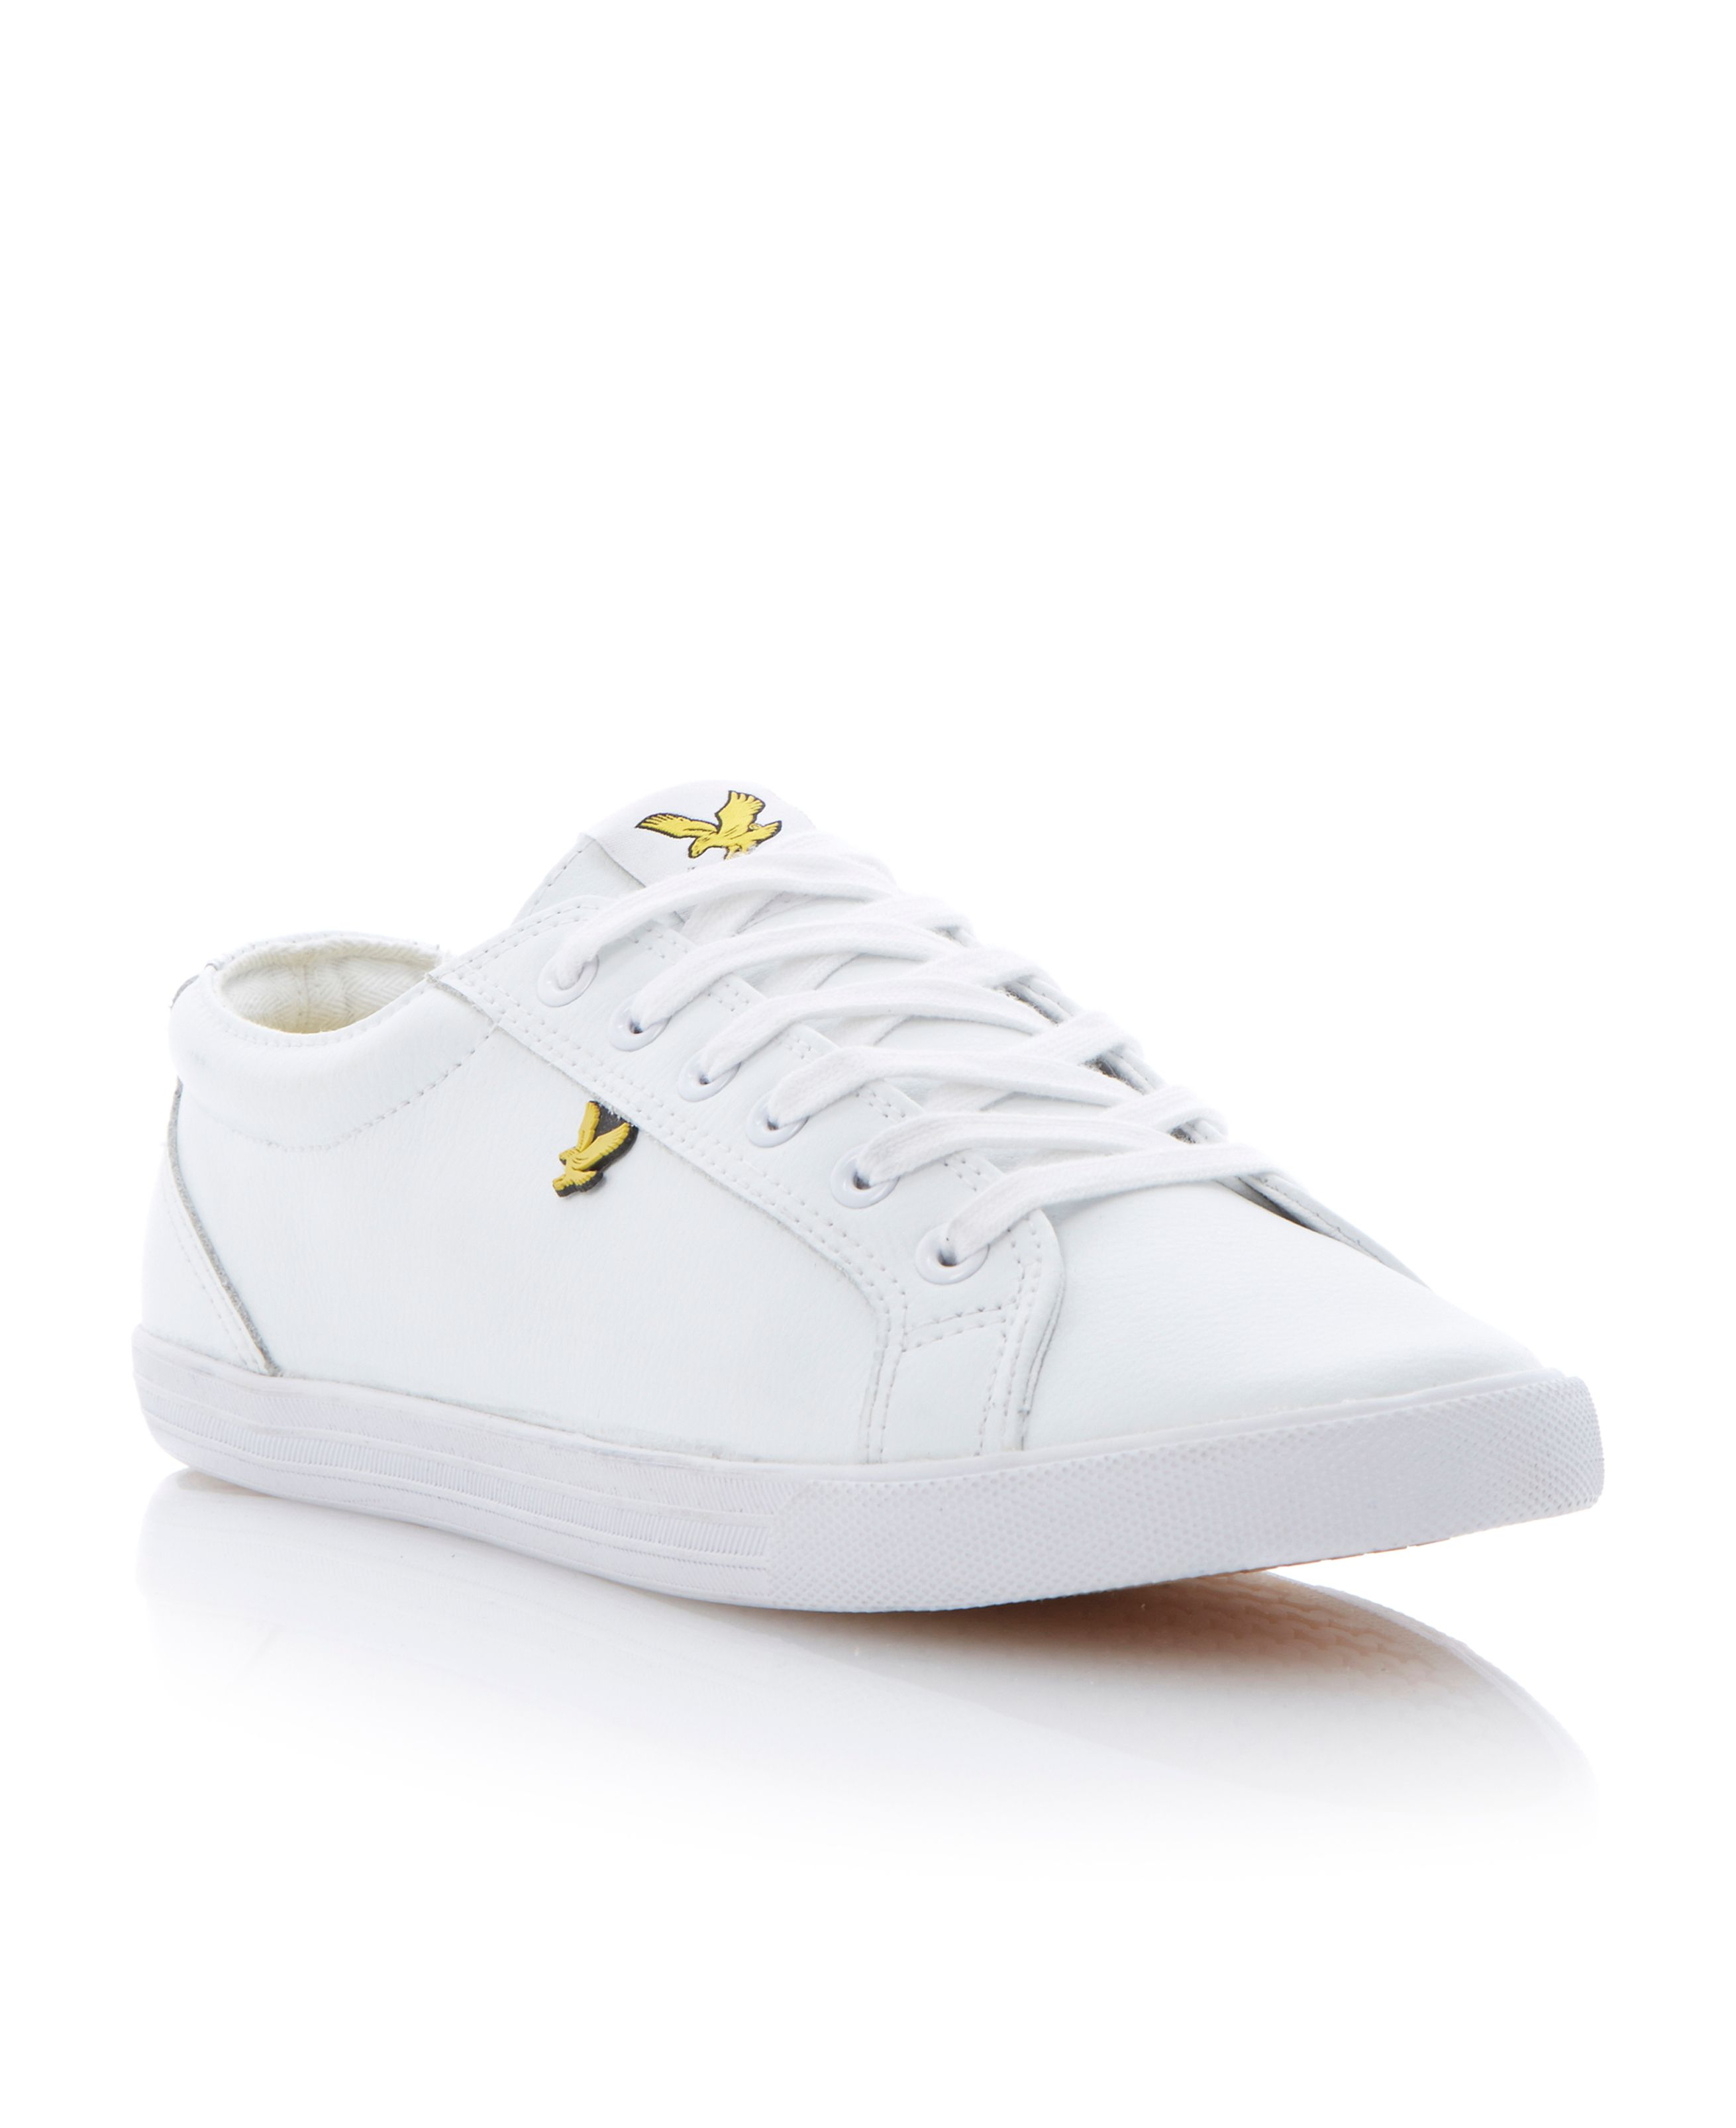 Halket leather lace up plimsolls